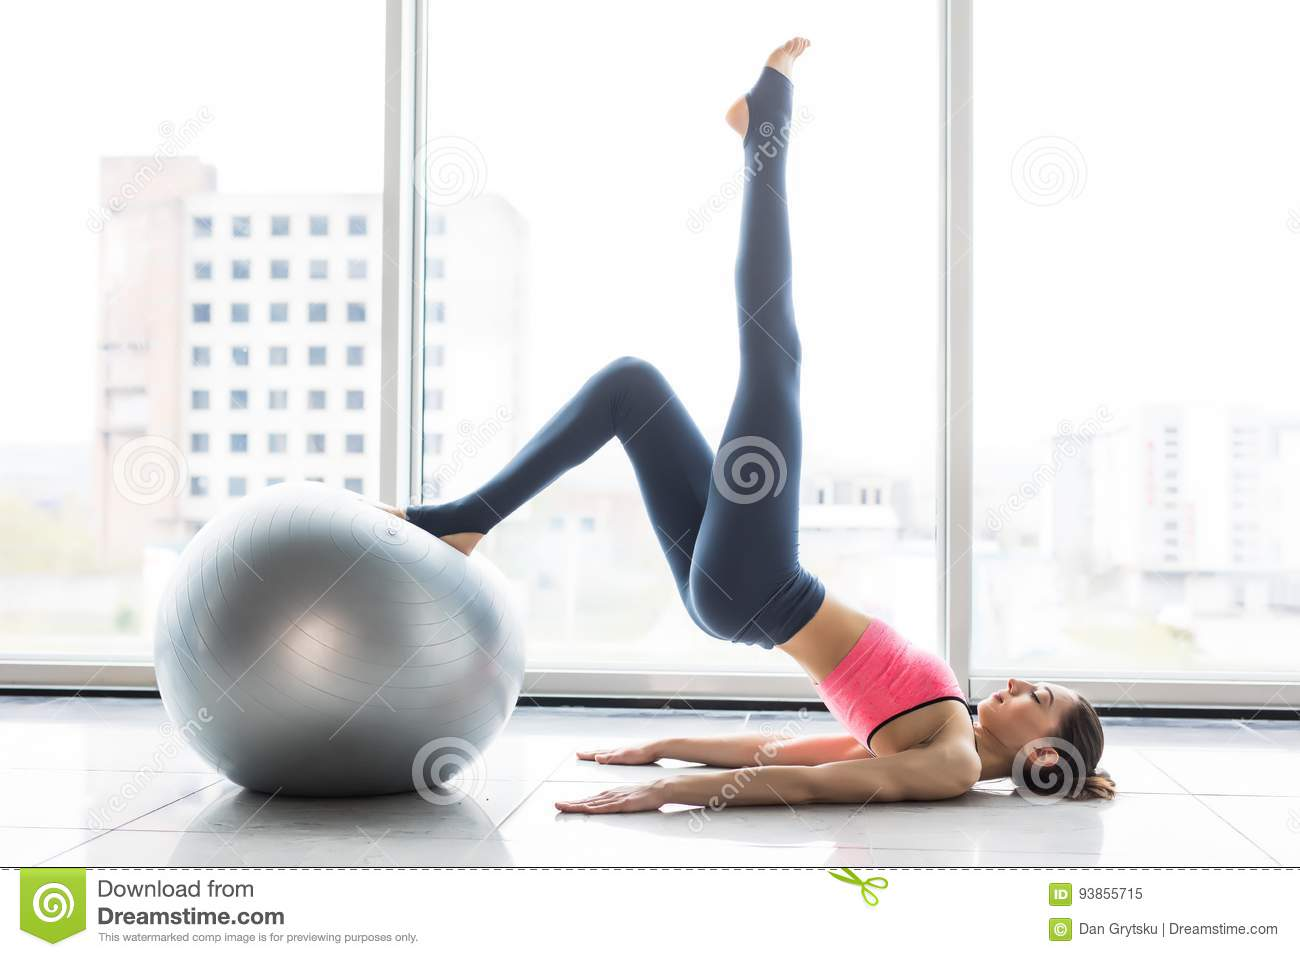 Woman working out with exercise ball in gym. Pilates woman doing exercises in the gym workout room with fitness ball. Fitness woma